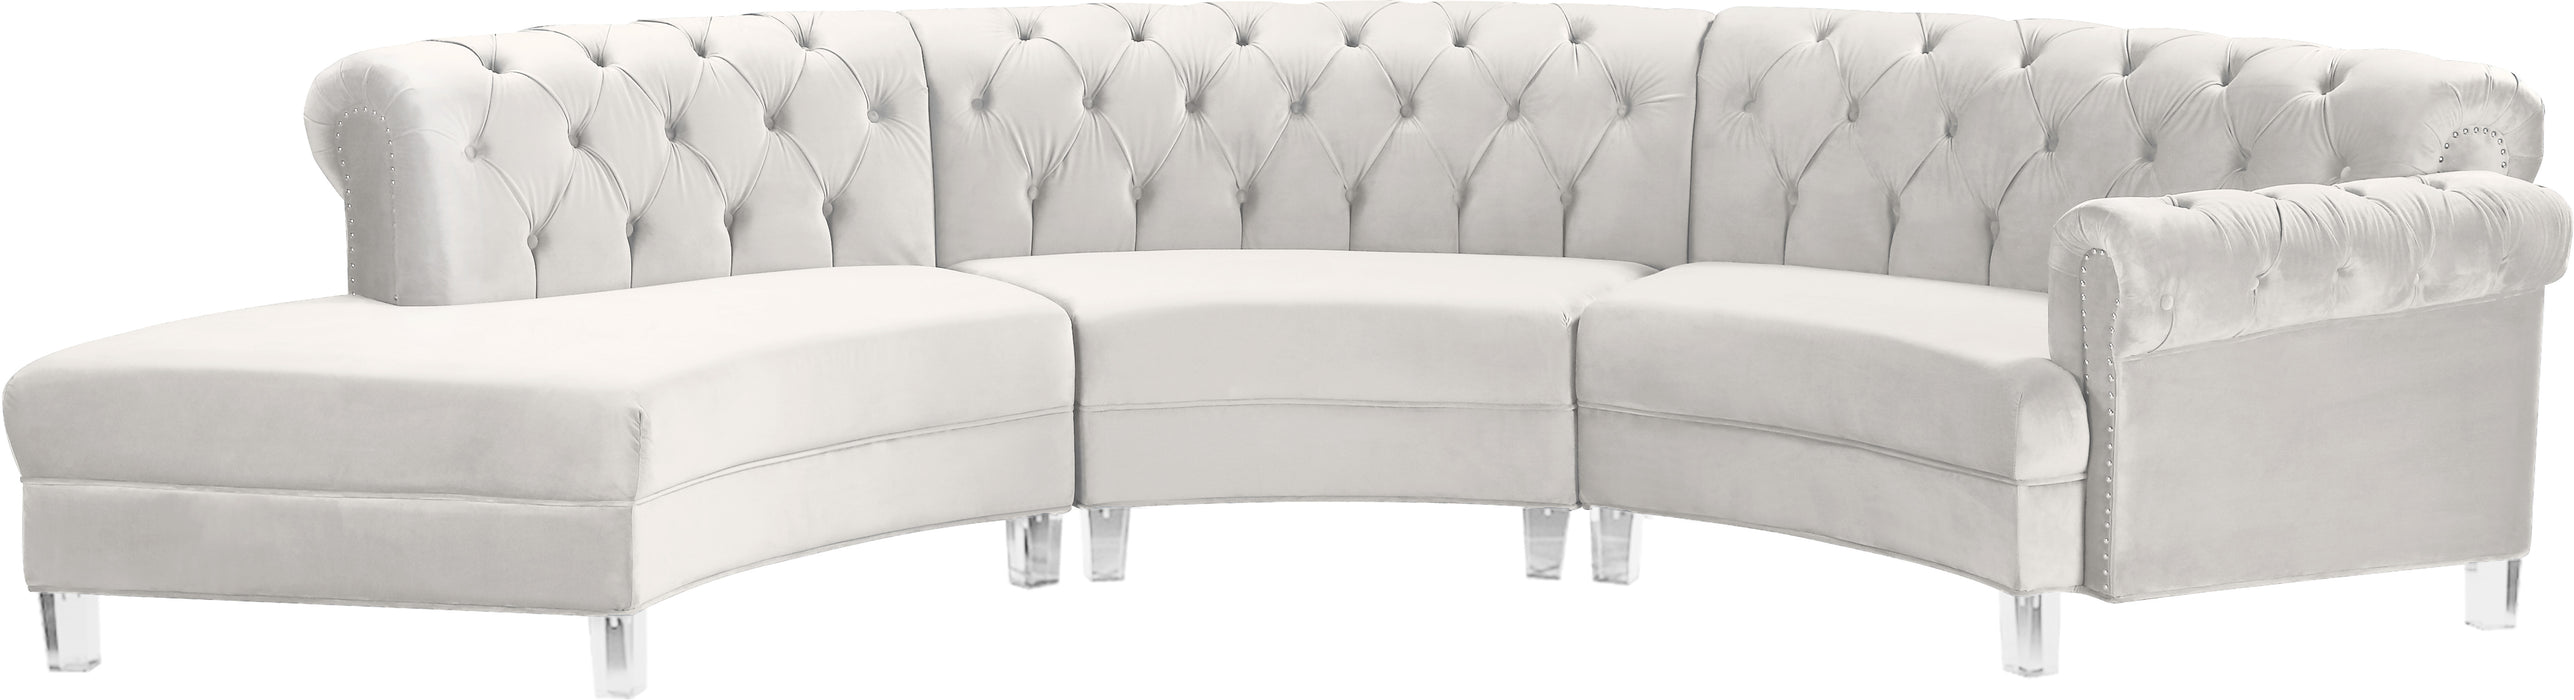 Anabella Cream Velvet 3pc. Sectional image